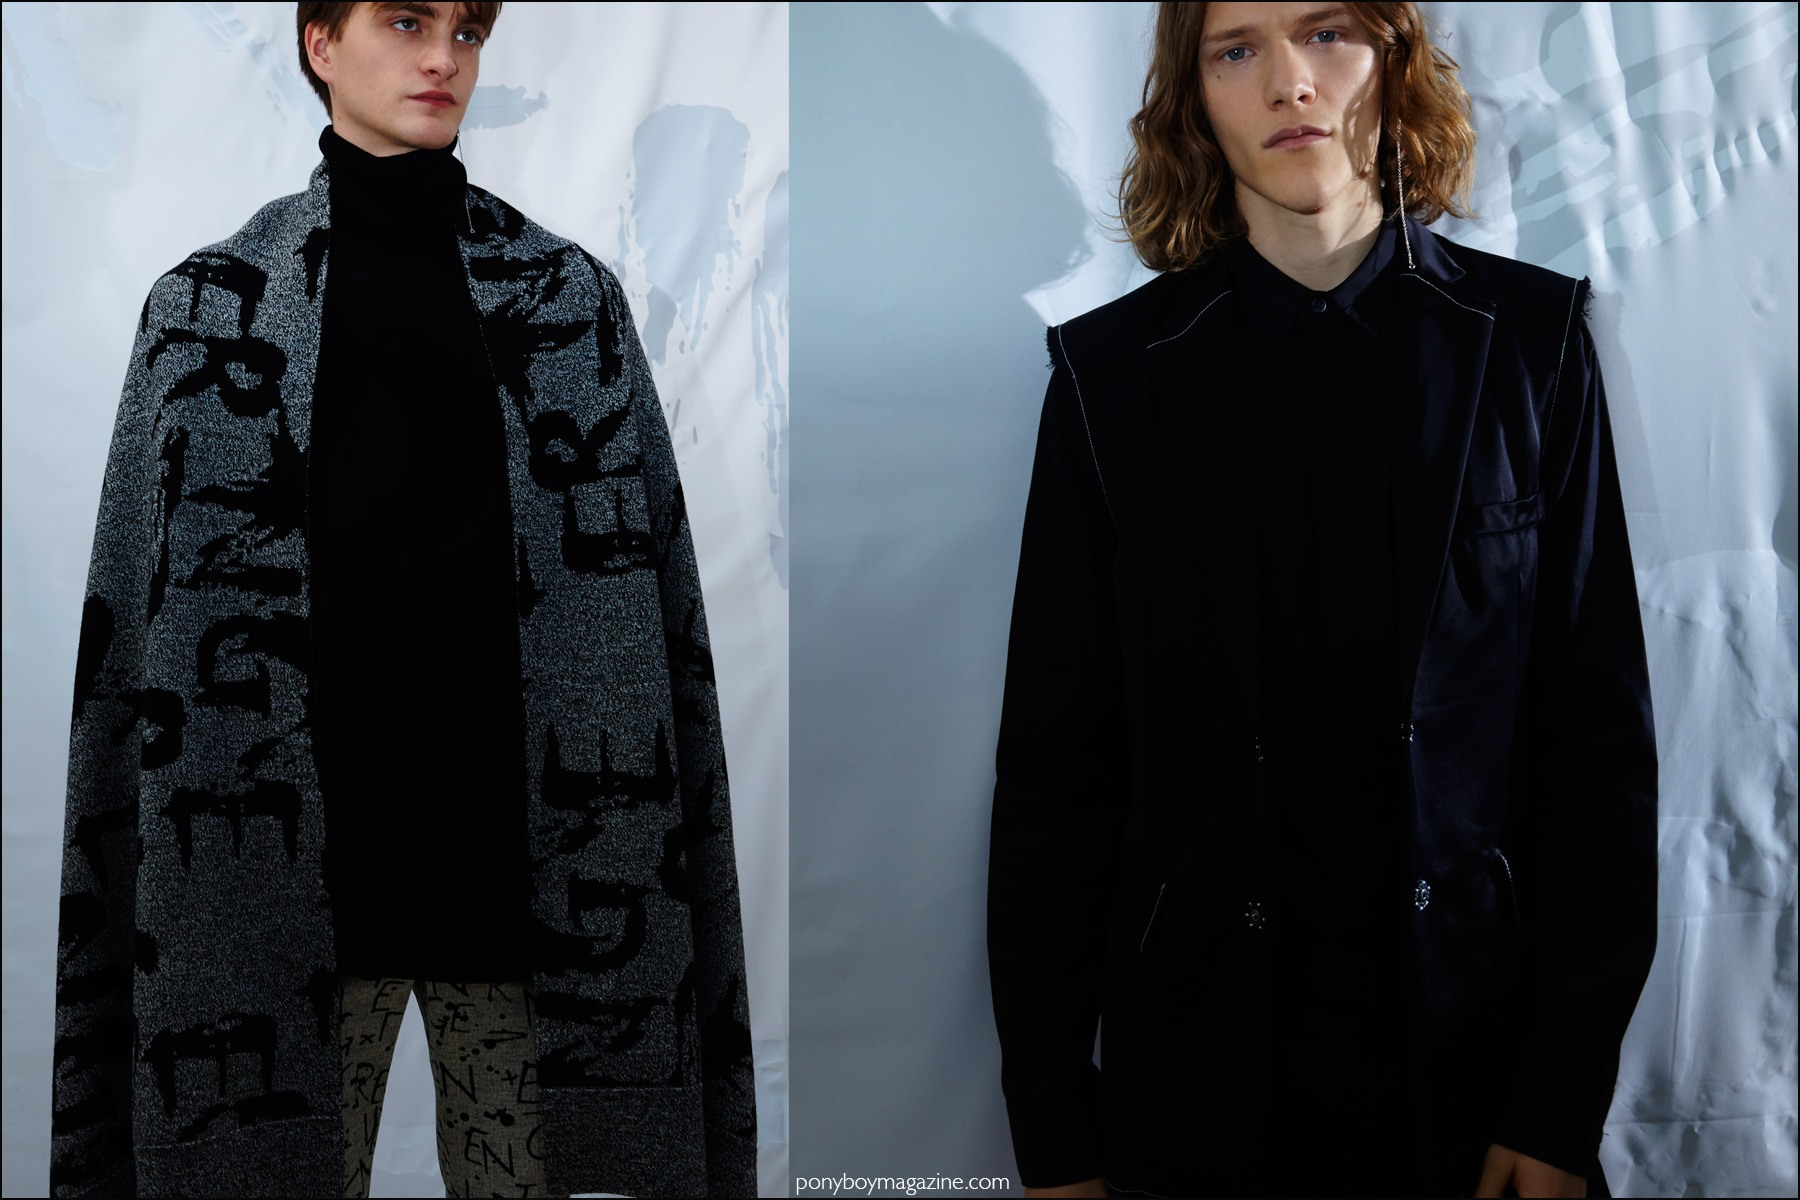 Male models Robert Laby and Ryan Keating photographed at the Kenneth Ning F/W16 menswear presentation. Photography by Alexander Thompson for Ponyboy magazine NY.